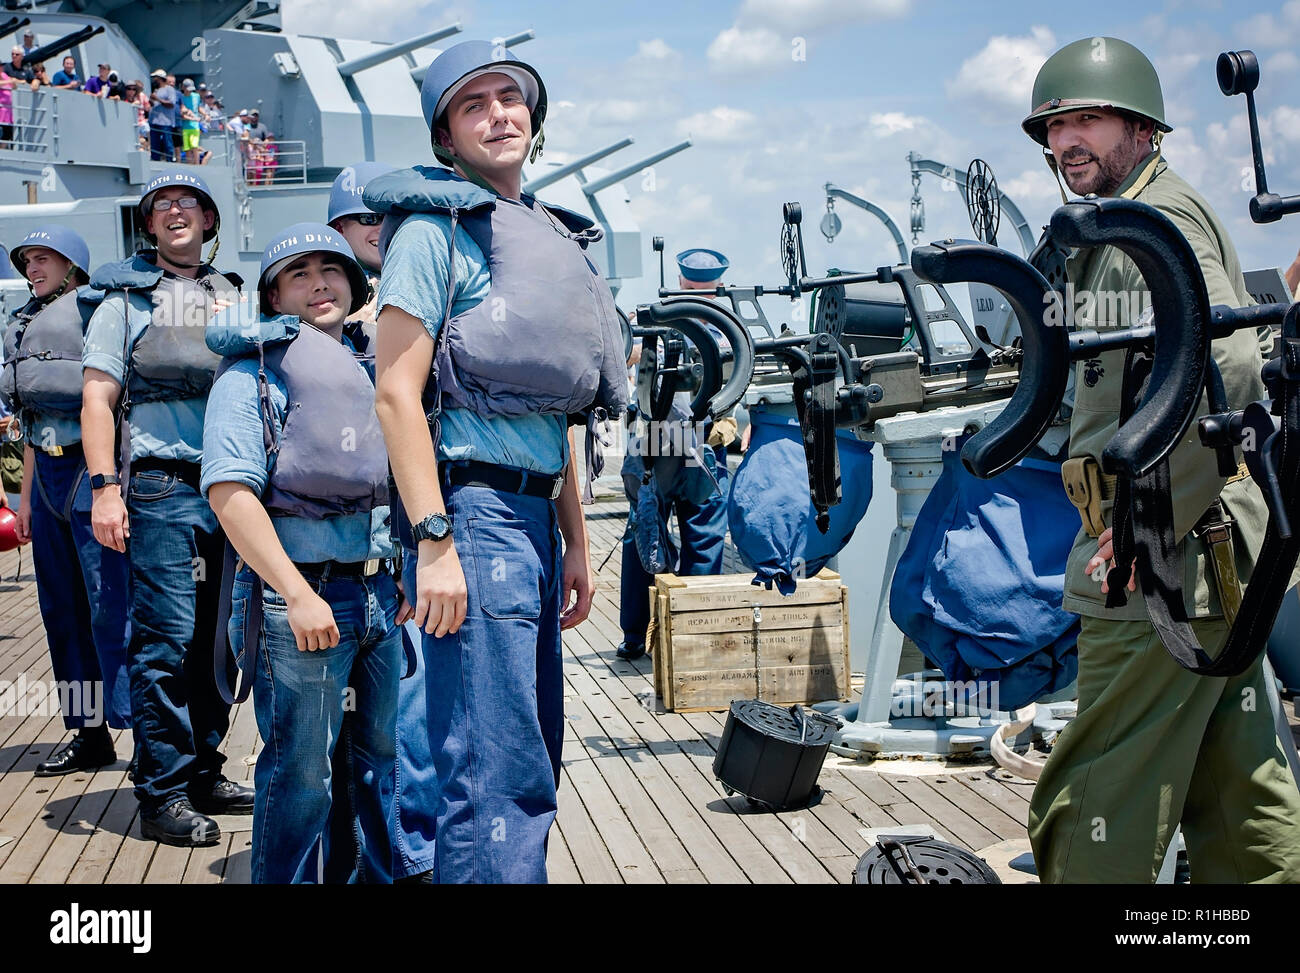 Members of the USS Alabamaís Living History Crew watch as a crowd gathers to see them engage vintage aircraft in a mock World War II battle, Aug. 12,  Stock Photo